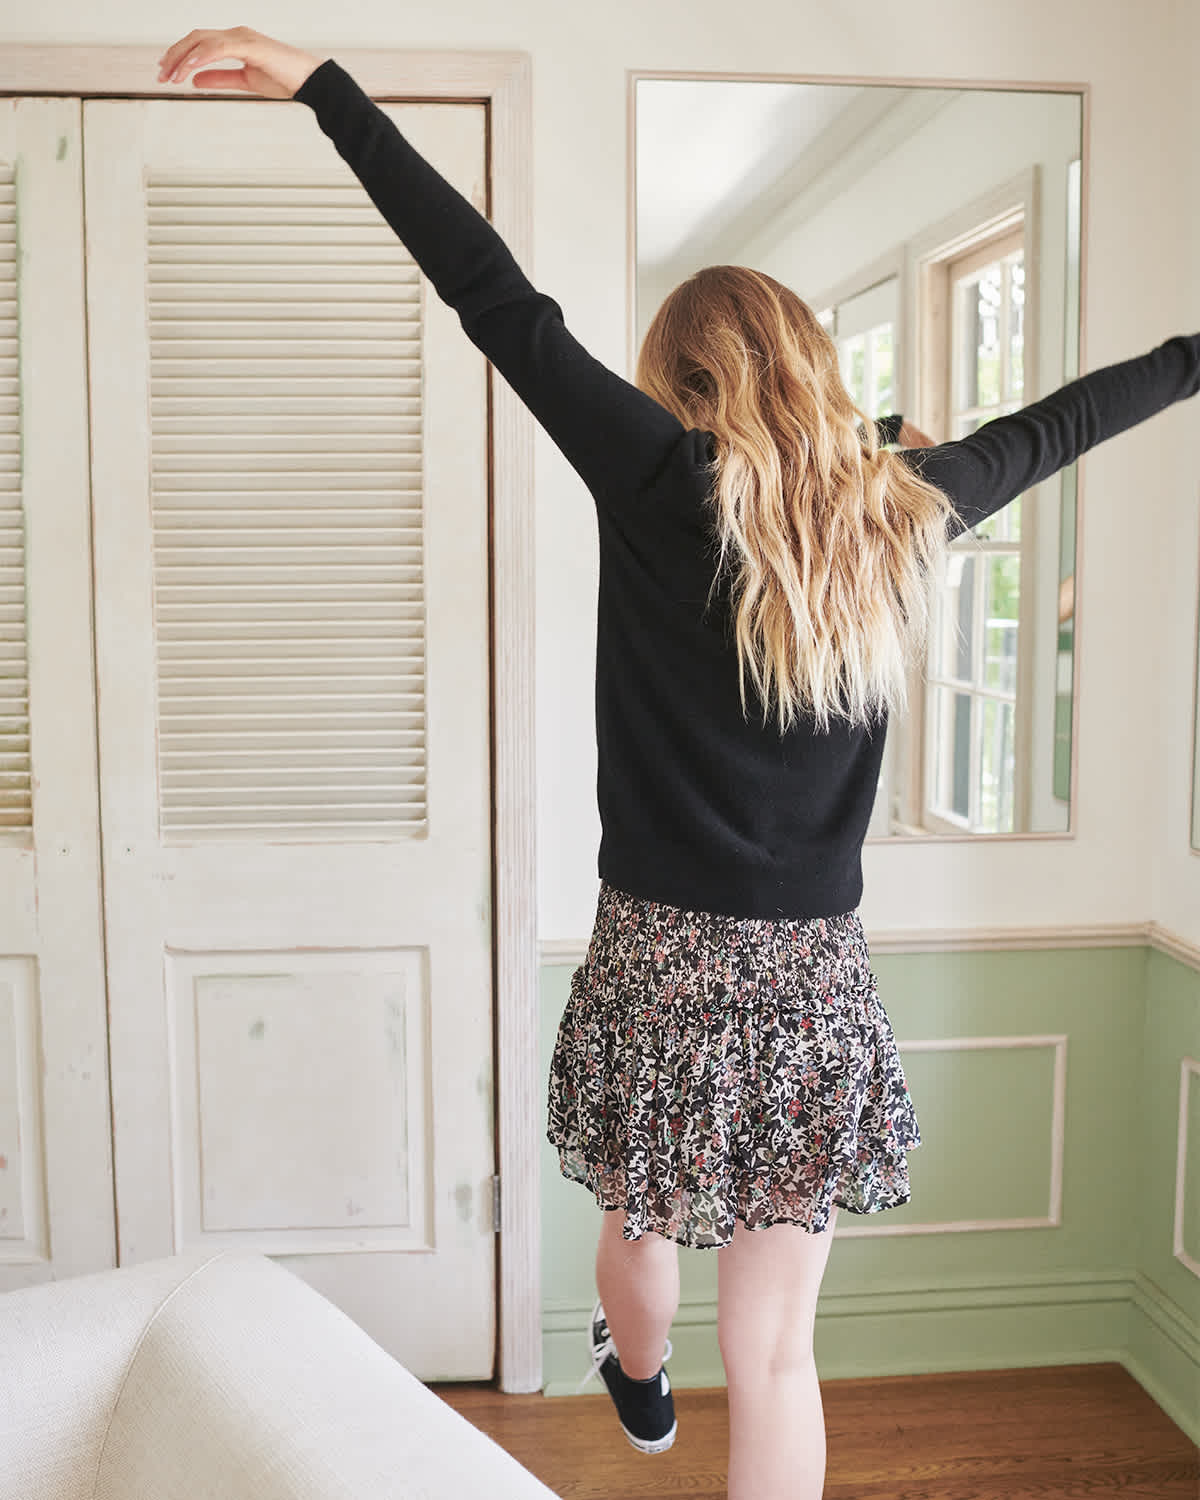 black cashmere sweater women raising arms